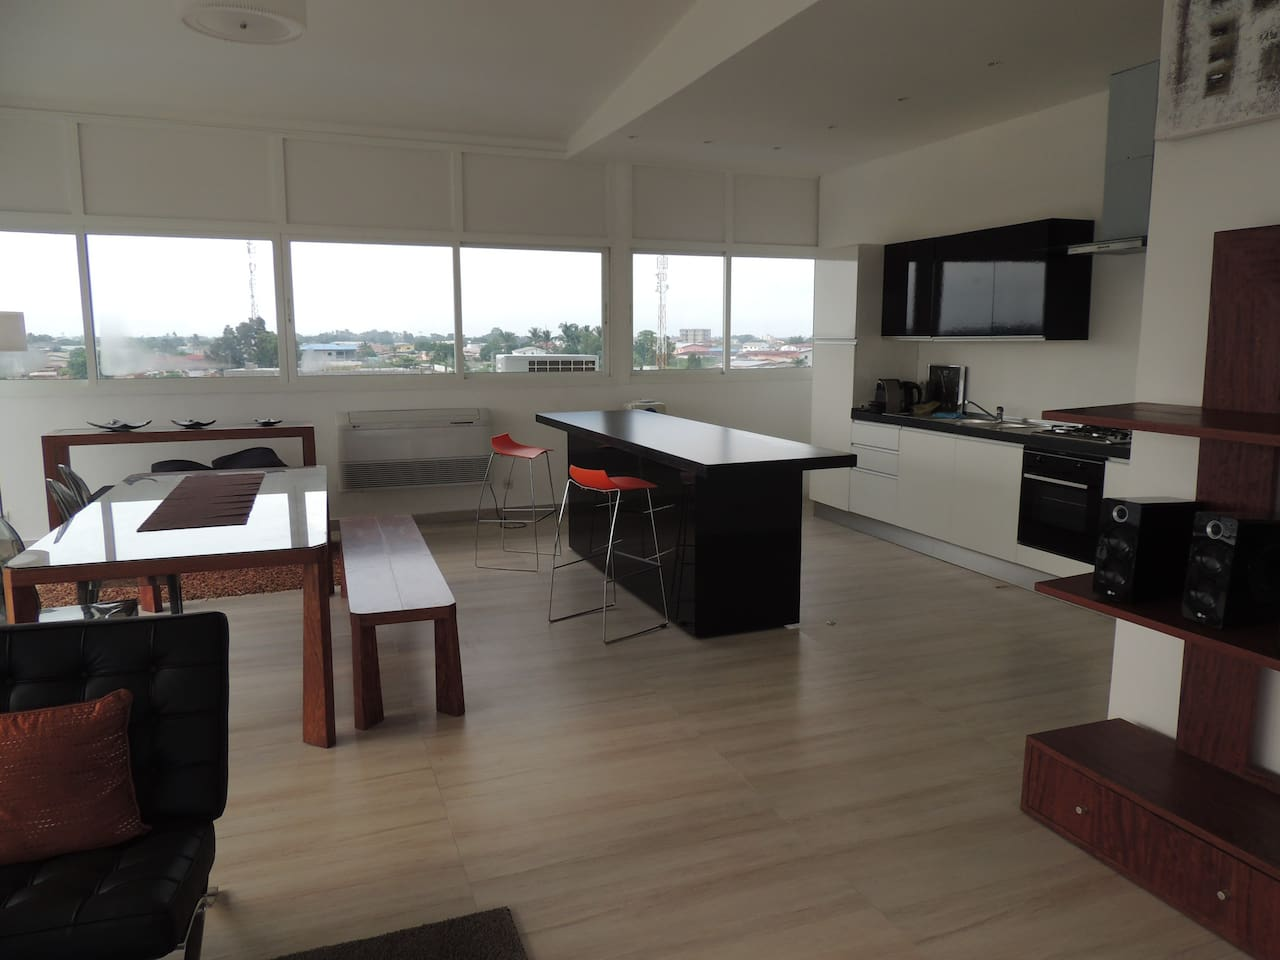 The penthouse offers an open fully equiped kitchen